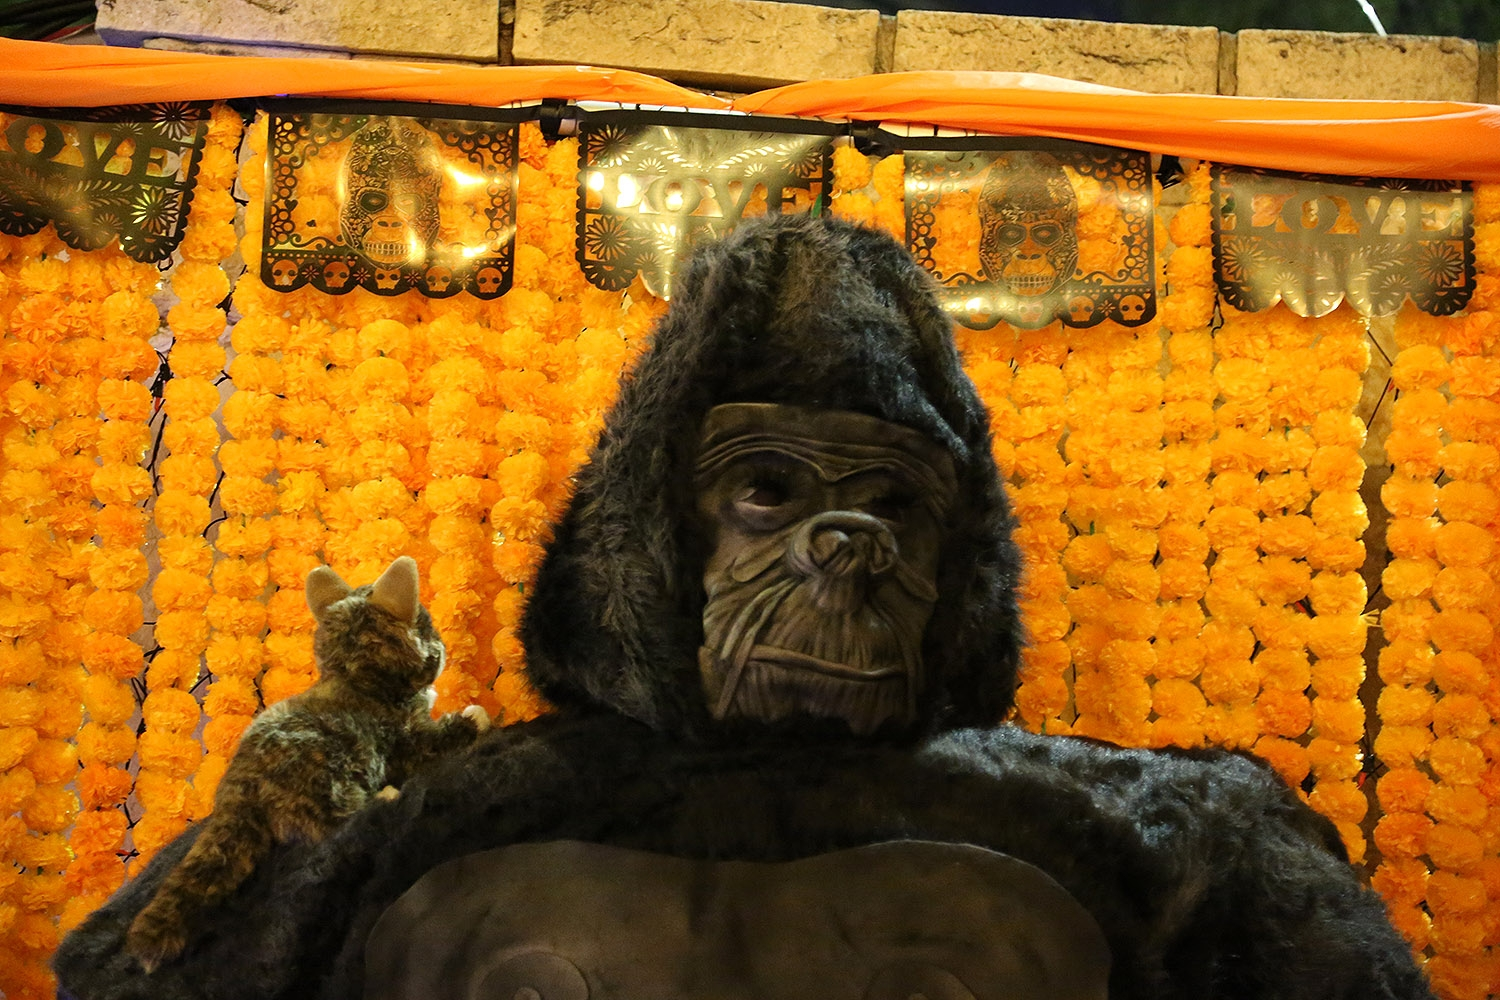 This piece by David Garcia pays tribute to Koko, the gorilla who died at 46, and who could communicate using sign language. <em><b>Photo by Ben Olivo | Heron</b></em>